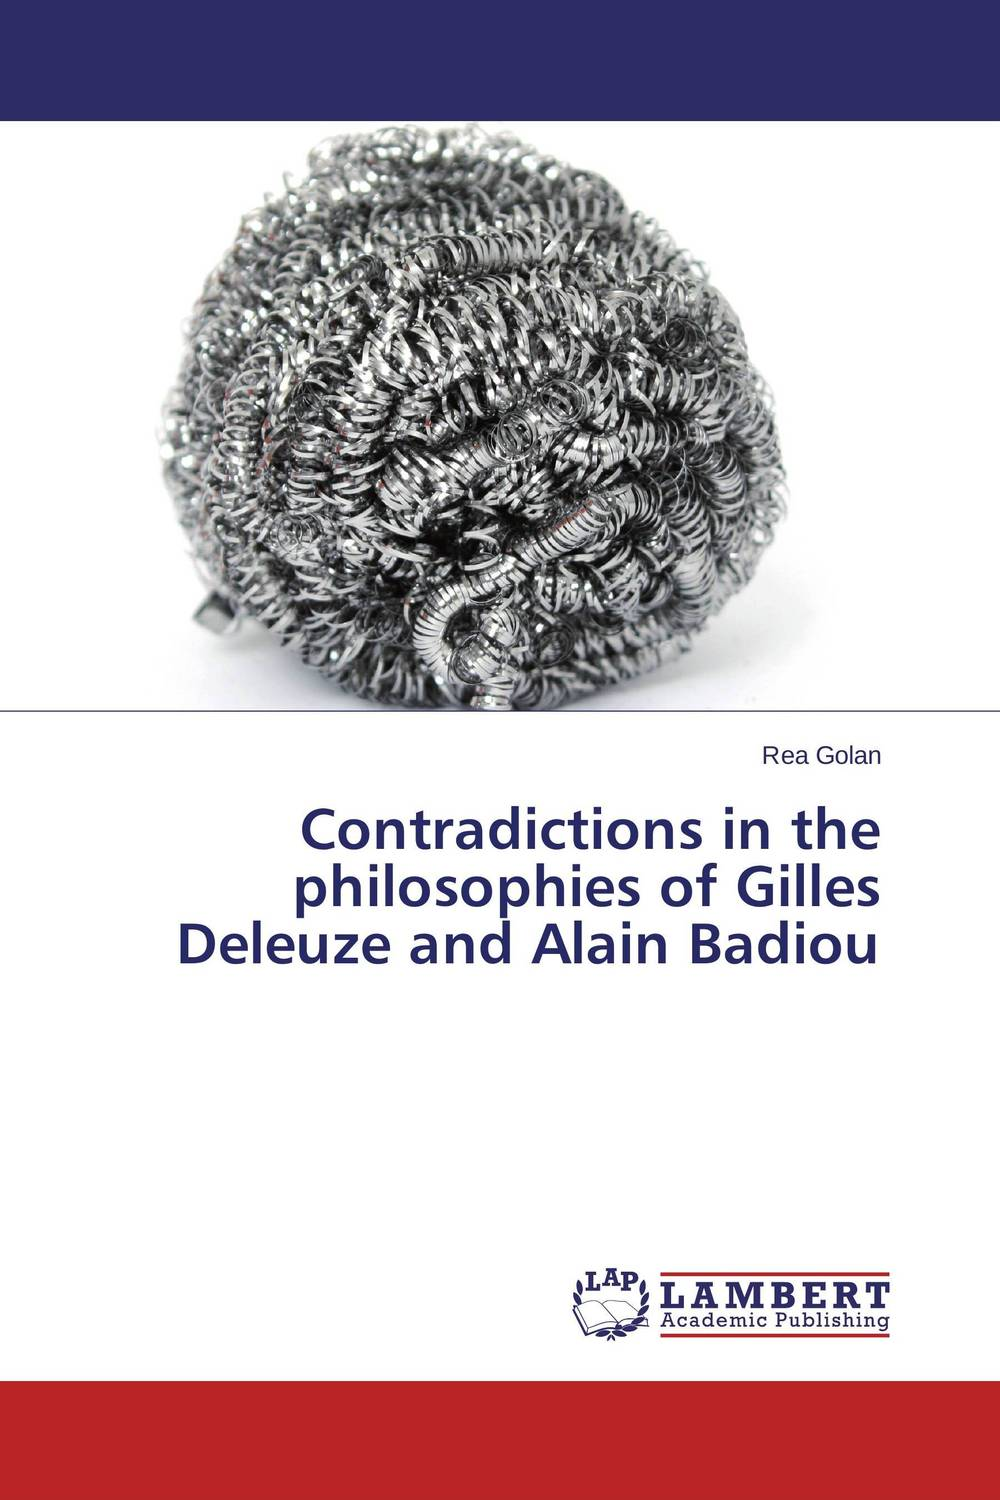 Contradictions in the philosophies of Gilles Deleuze and Alain Badiou philosophical issues in psychiatry iv